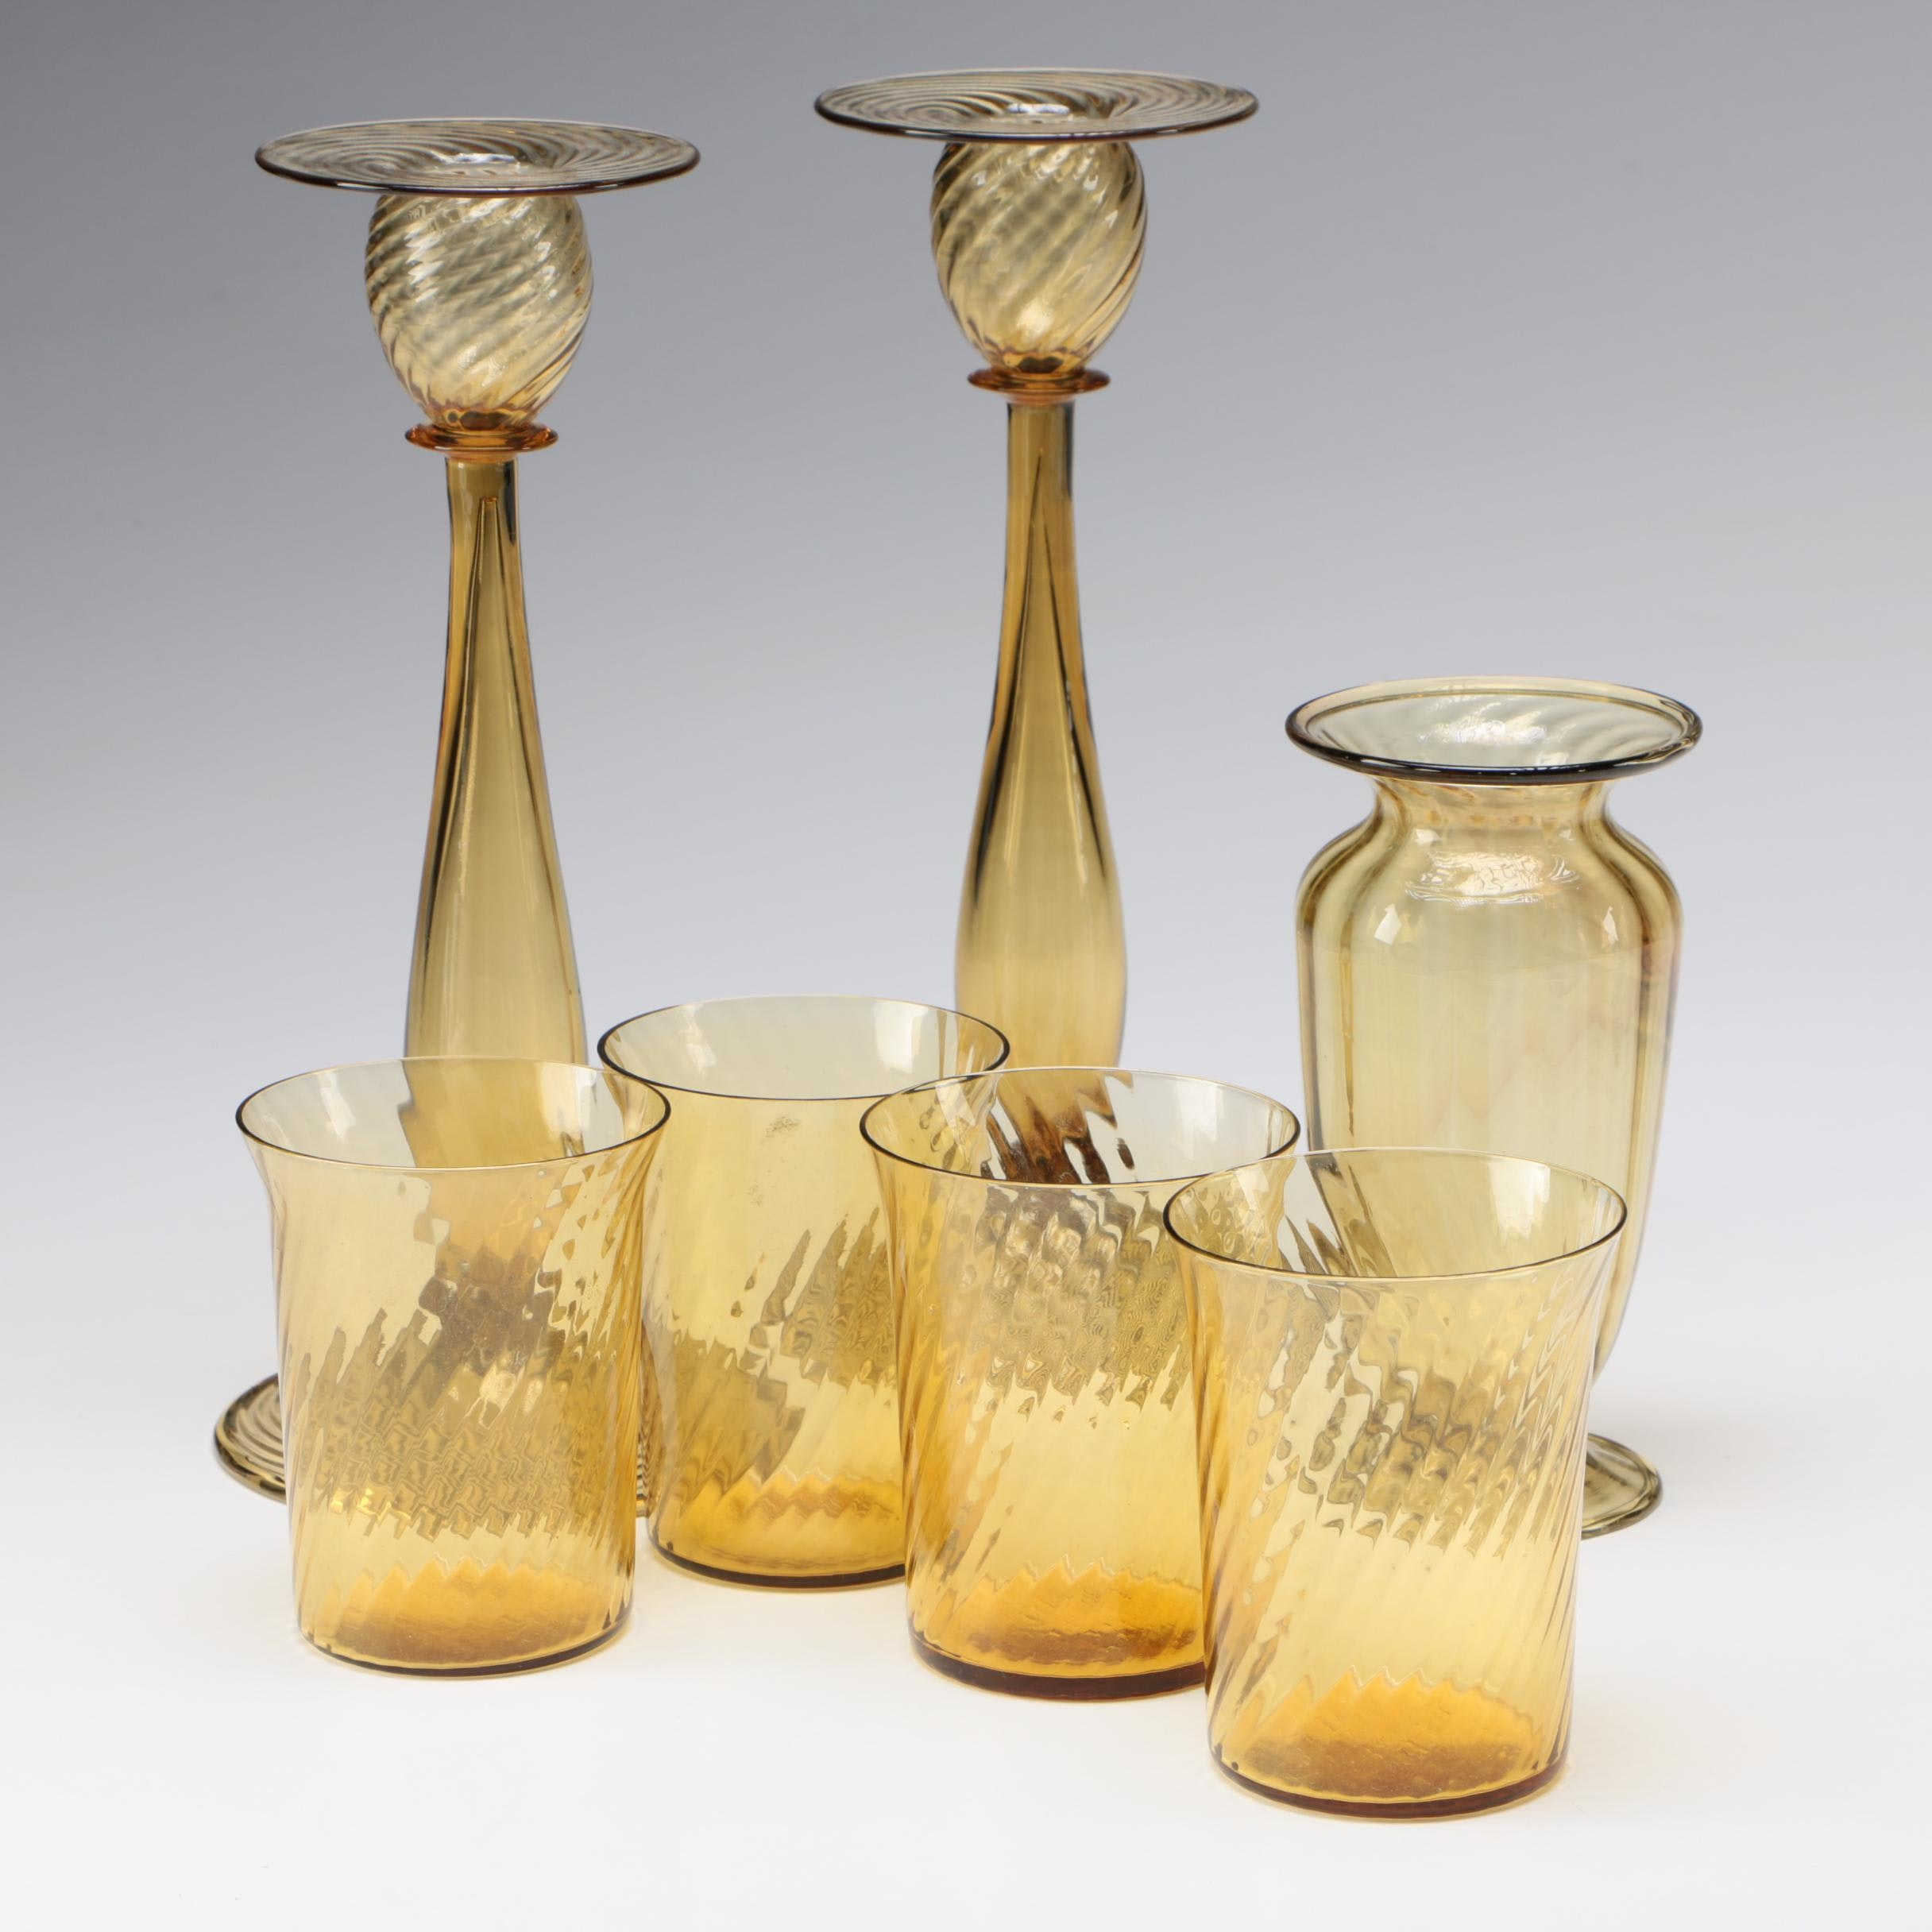 Steuben Amber Art Glass Candlesticks, Cups, and Vase, Early 20th Century